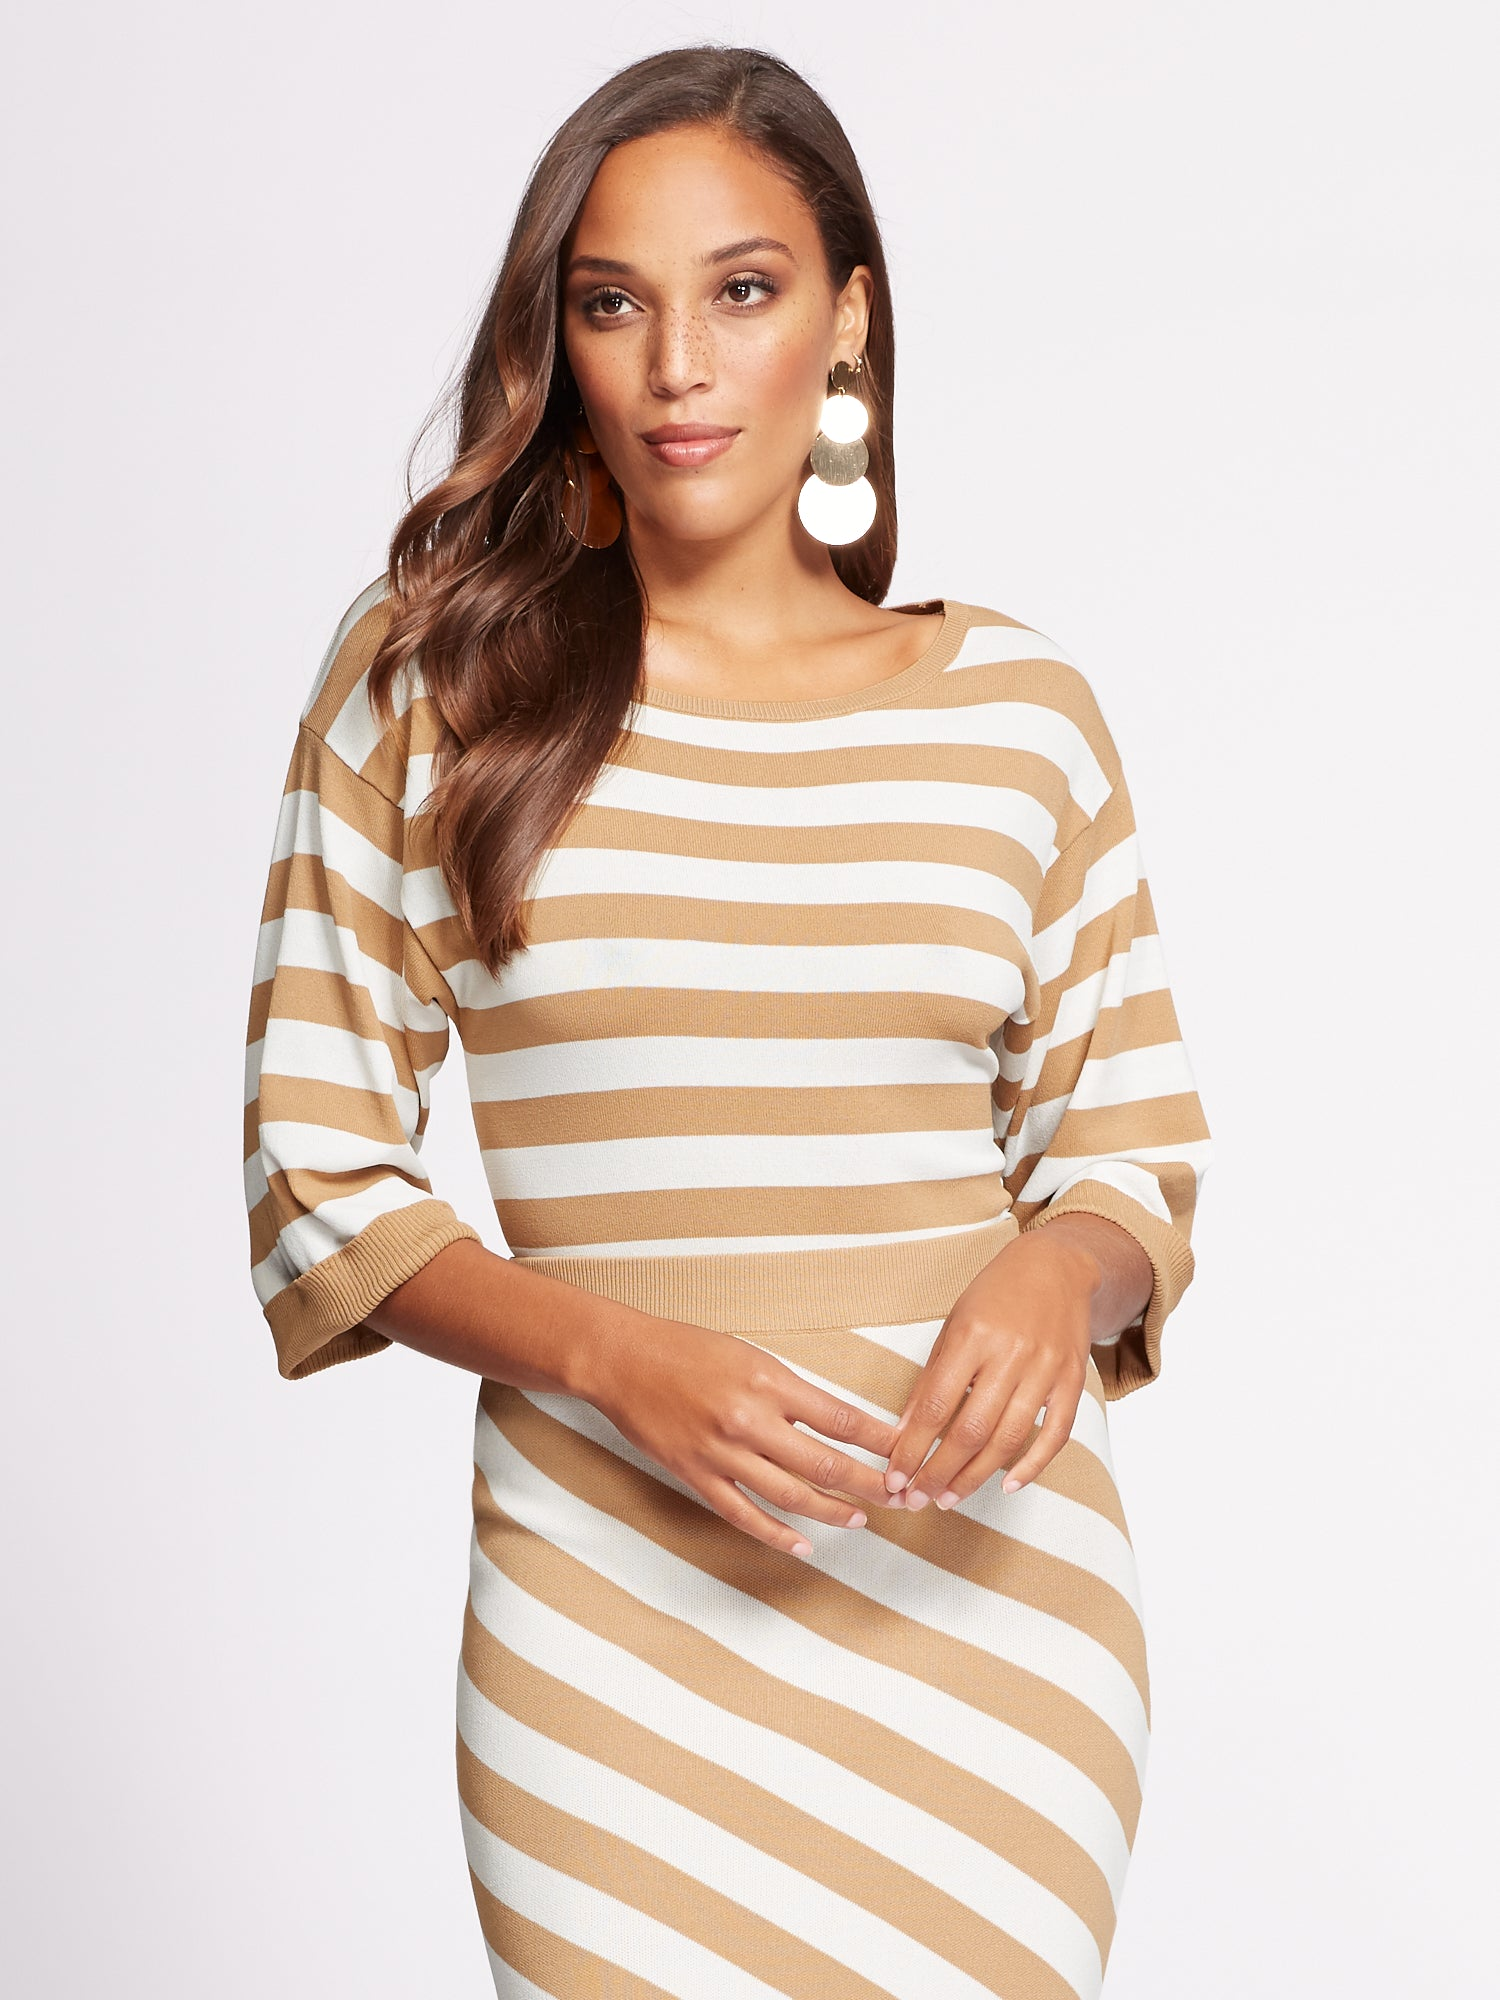 2142ab2a3c New York & Company   Gabrielle Union Collection - Stripe Sweater in ...